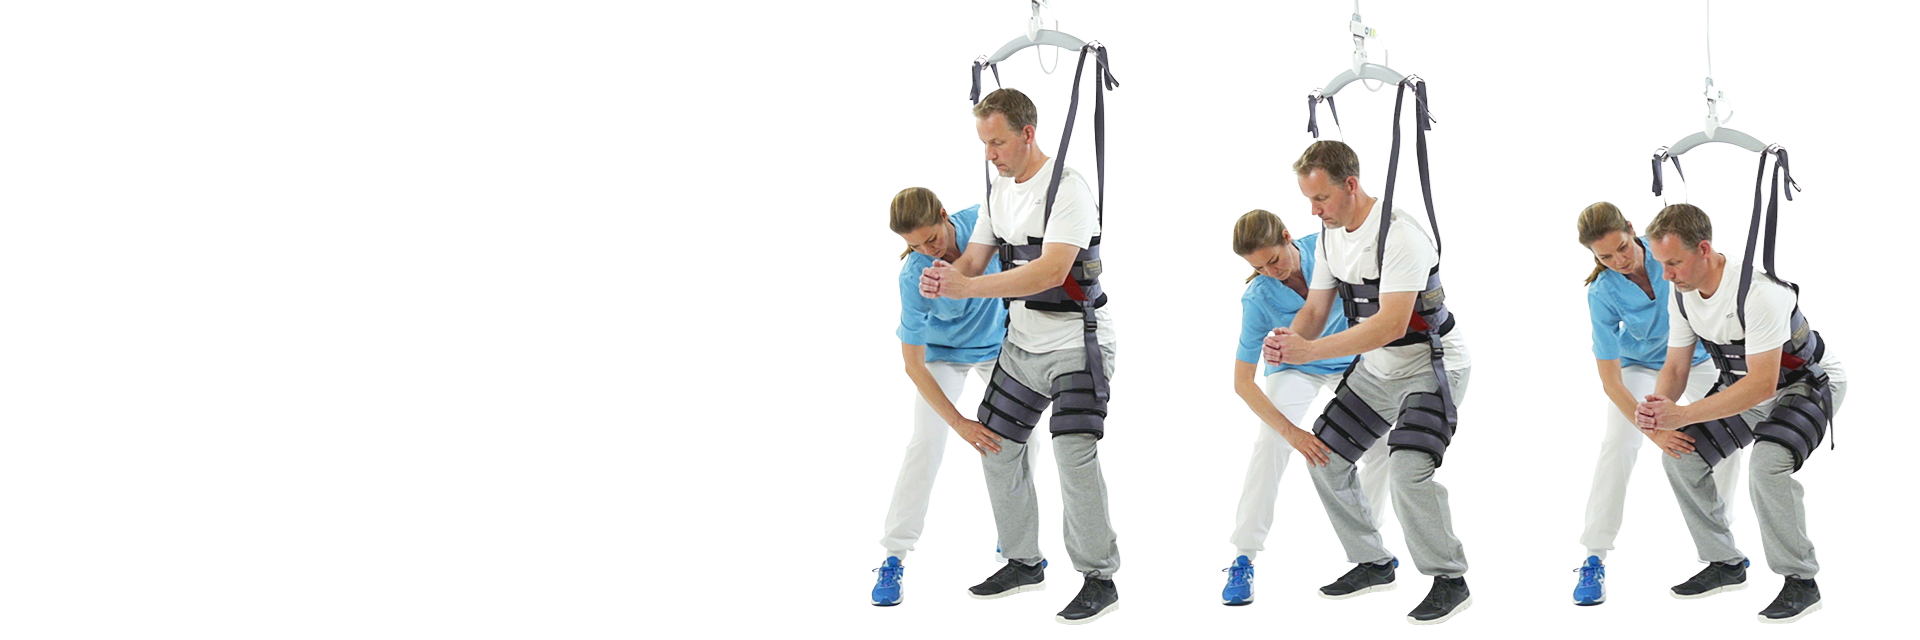 NEW! Trainer Module and Gait Trainer sling The Trainer Module is integrated into a GH3+ and provides safe and assisted rehabilitation exercises with dynamic body weight support.